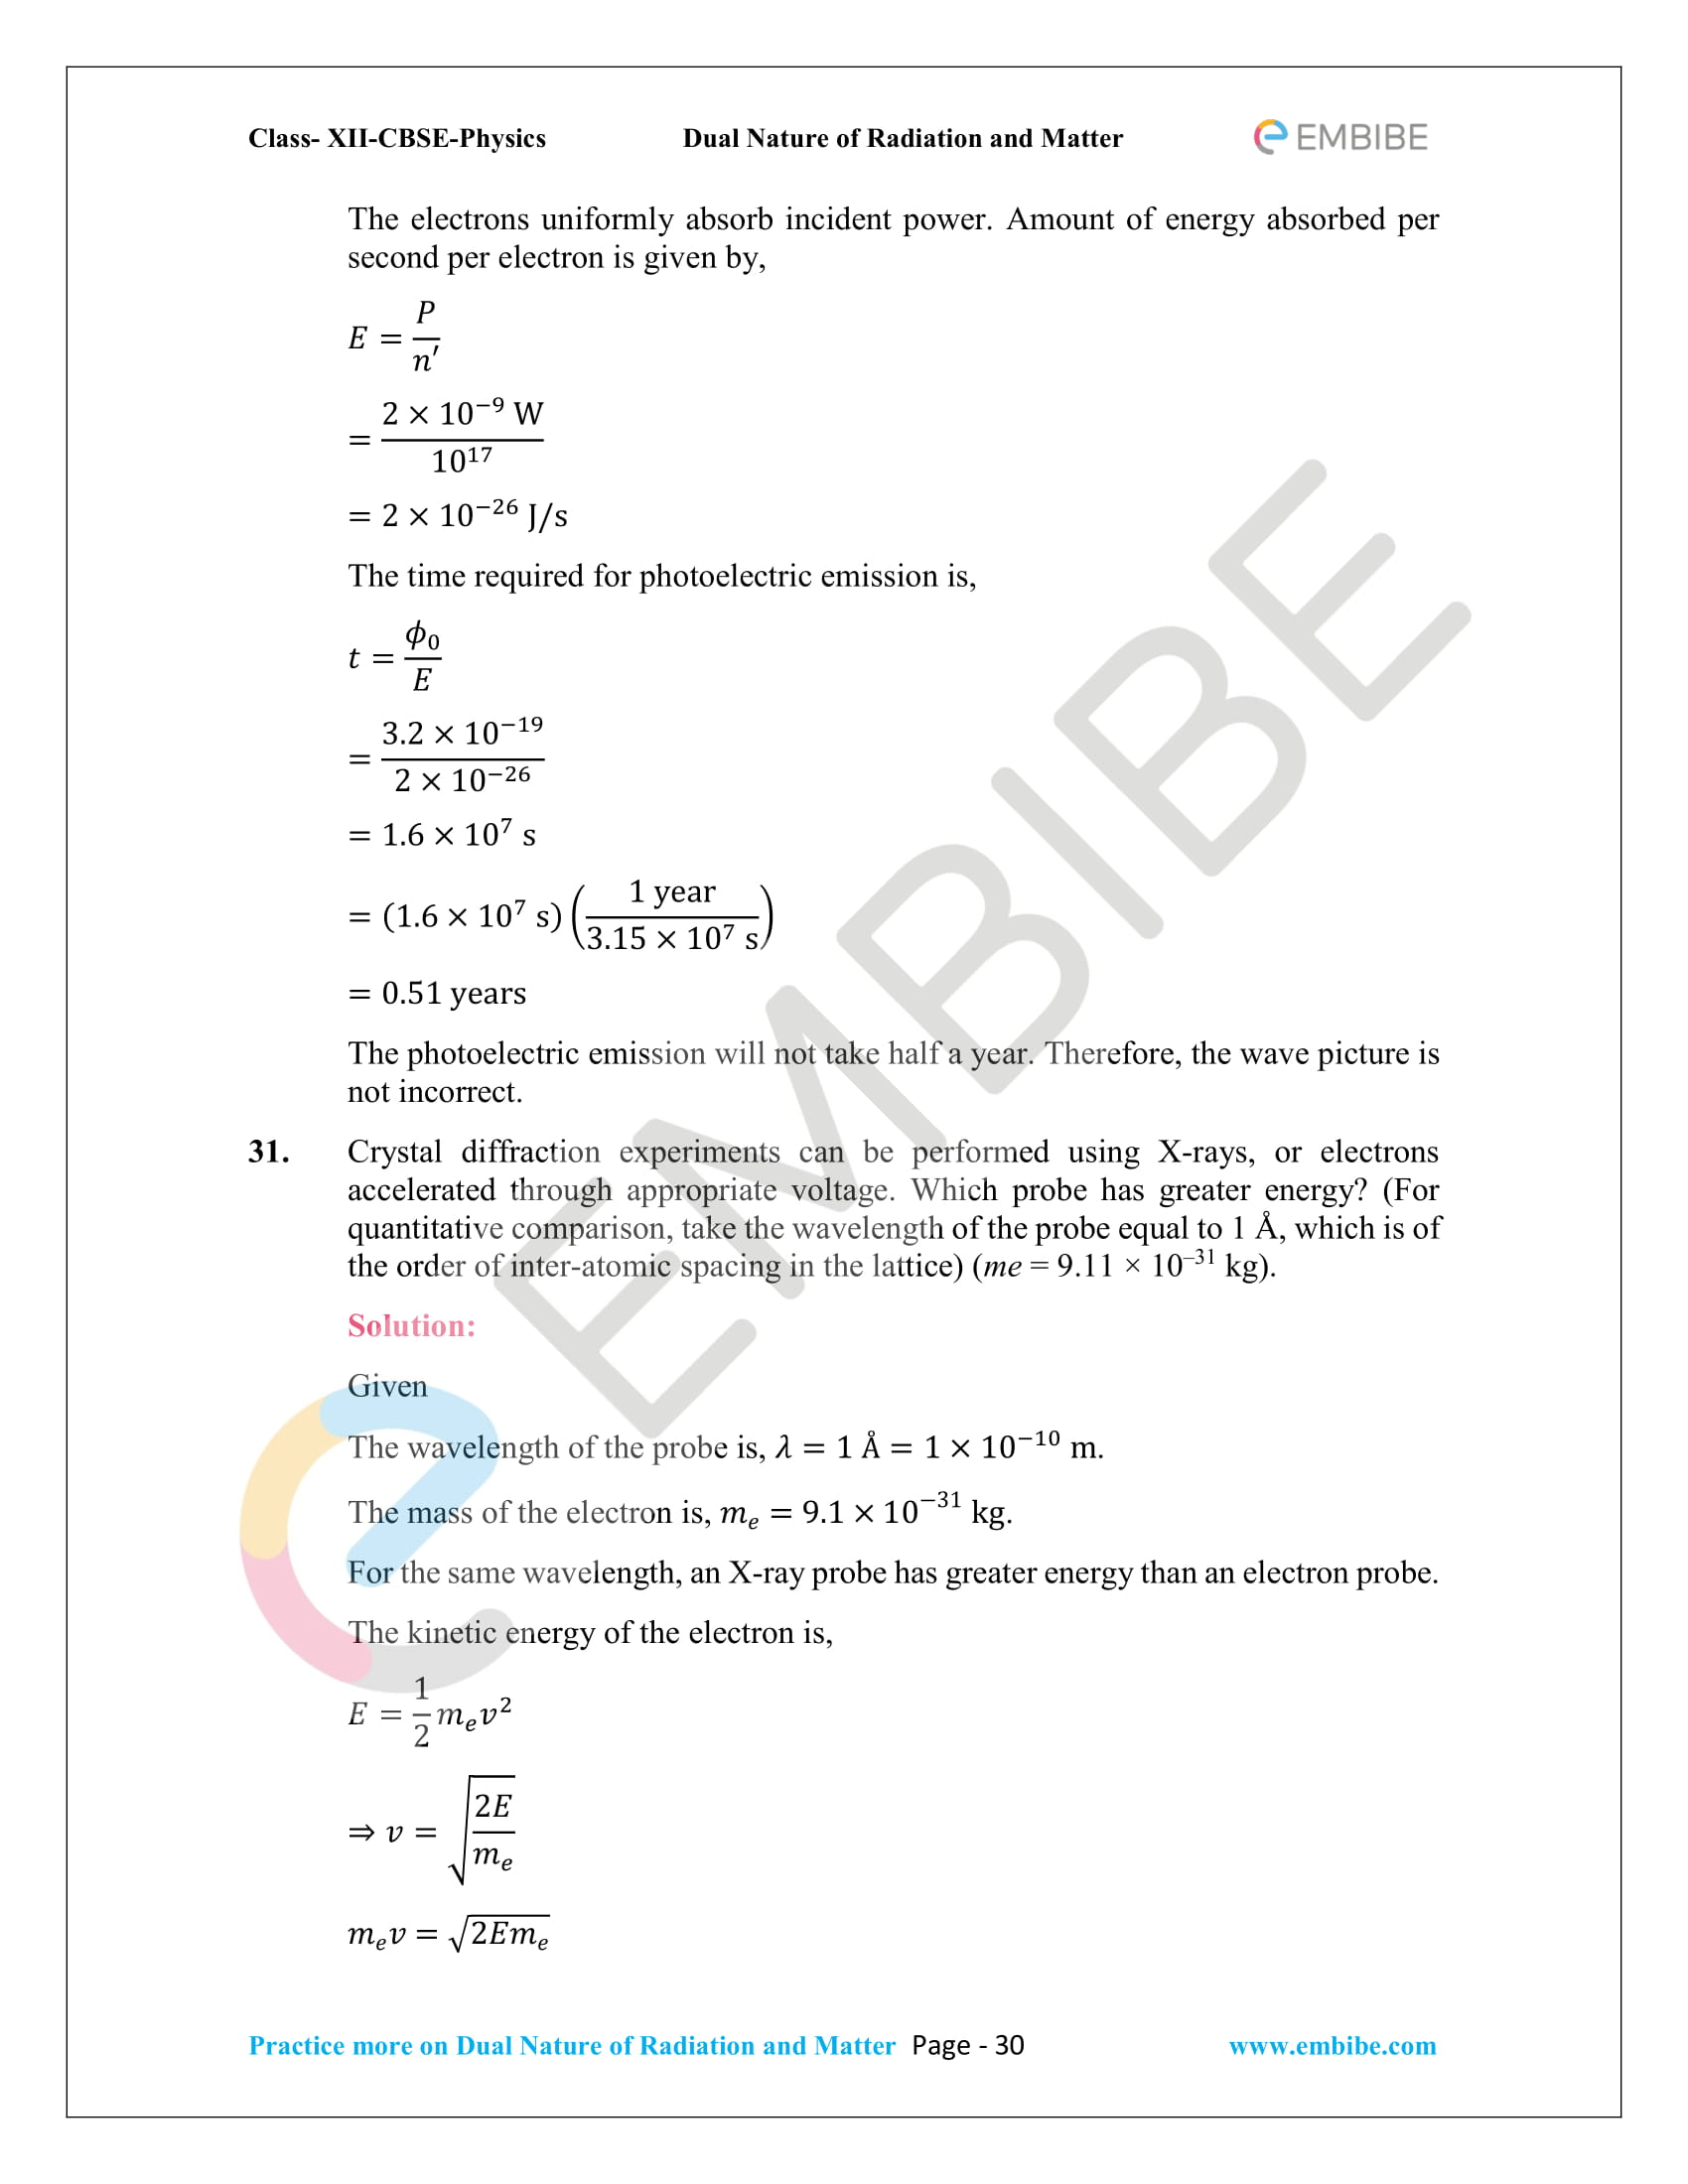 NCERT_Grade 12_Physics_Ch_11_Dual Nature of Radiation and Matter-30